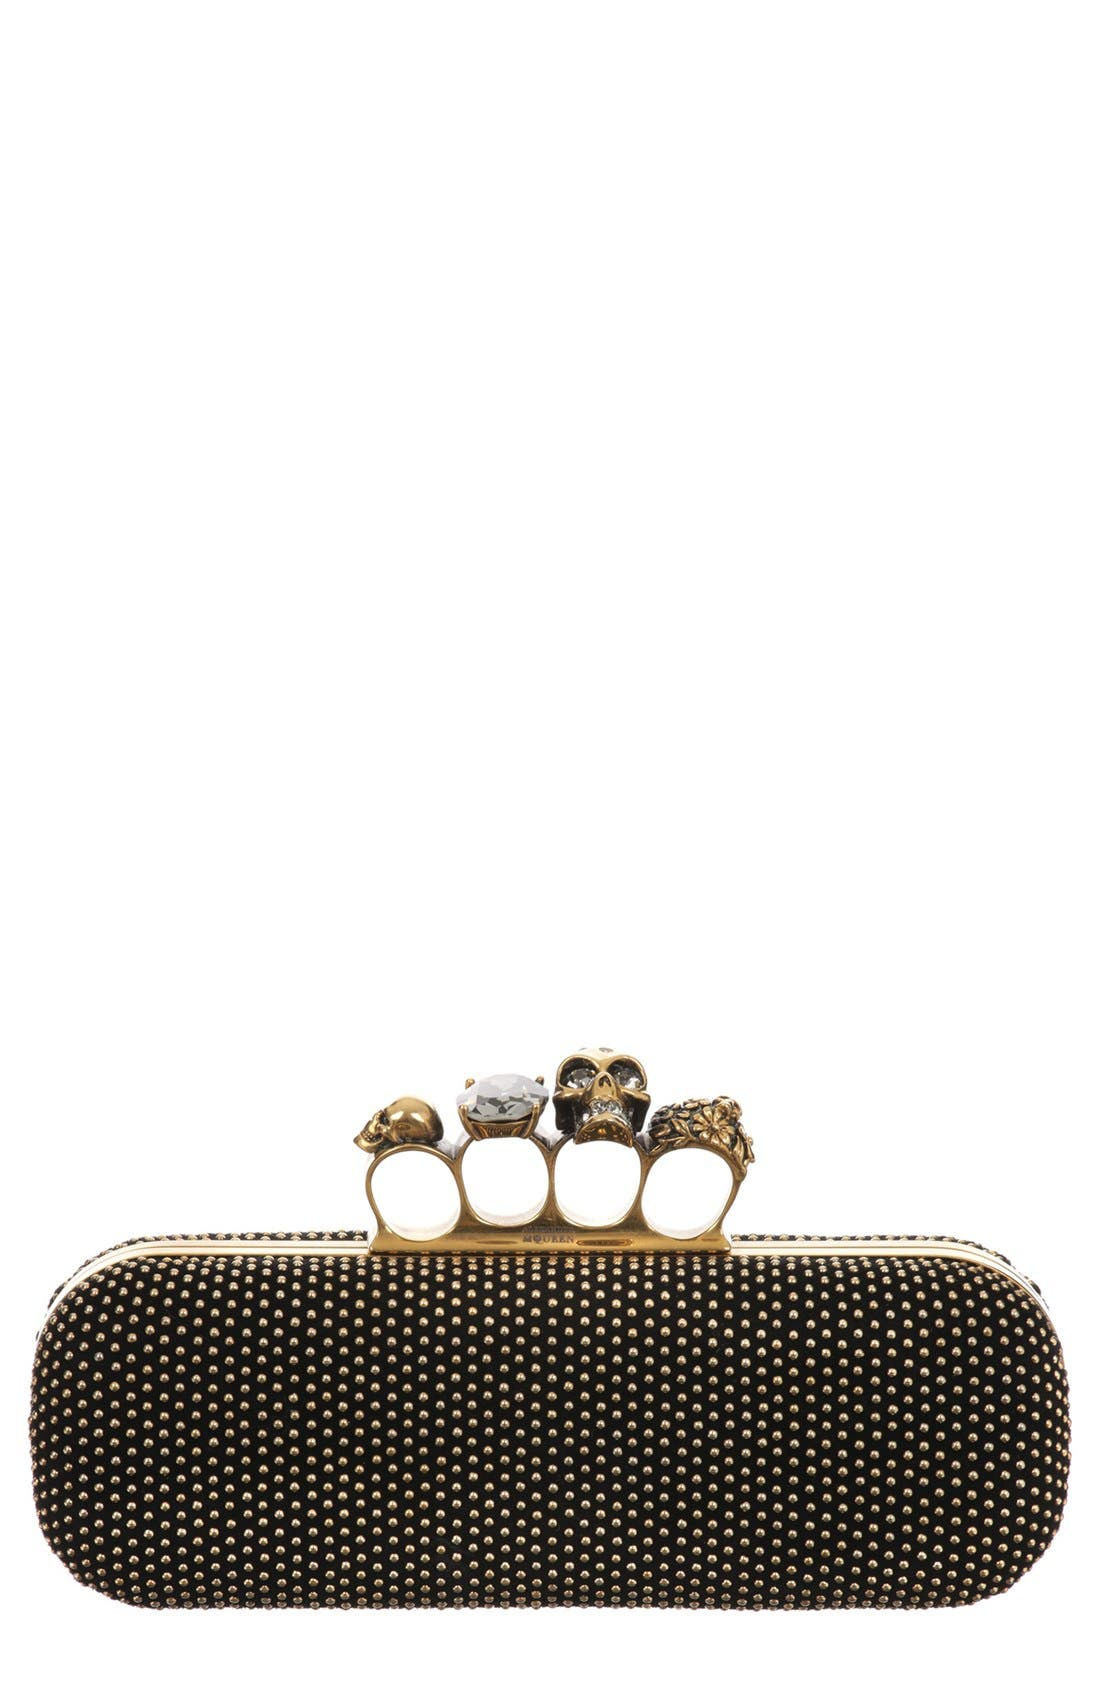 Main Image - Alexander McQueen Knuckle Clasp Studded Box Clutch